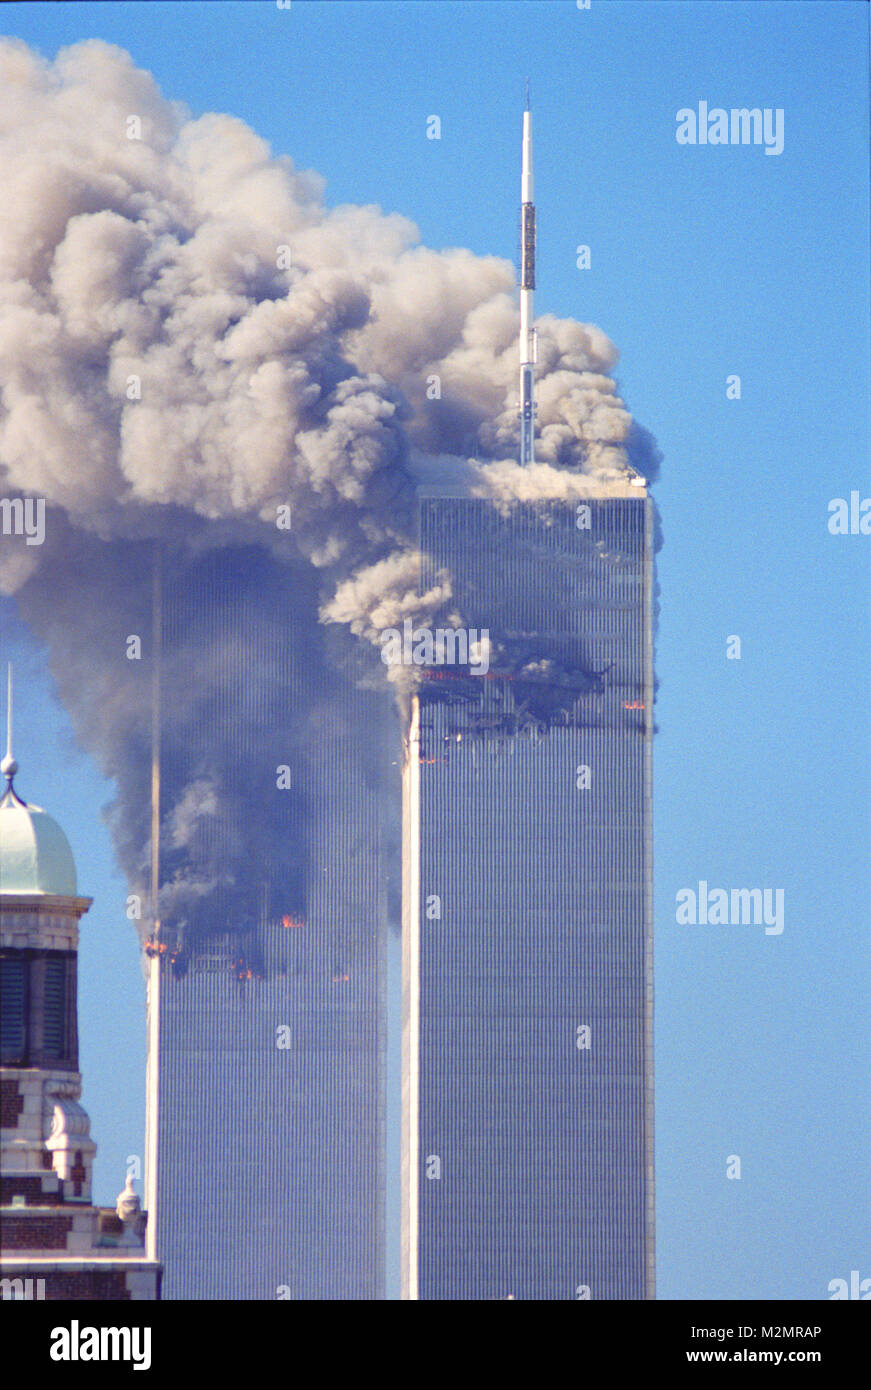 attacks on world trade center analysis Vulnerabilities in the design of new york's world trade center (wtc)  of the  wtc and surrounding buildings in the aftermath of the terrorist attacks   according to hamburger's preliminary analysis, the impact of the jetliners.